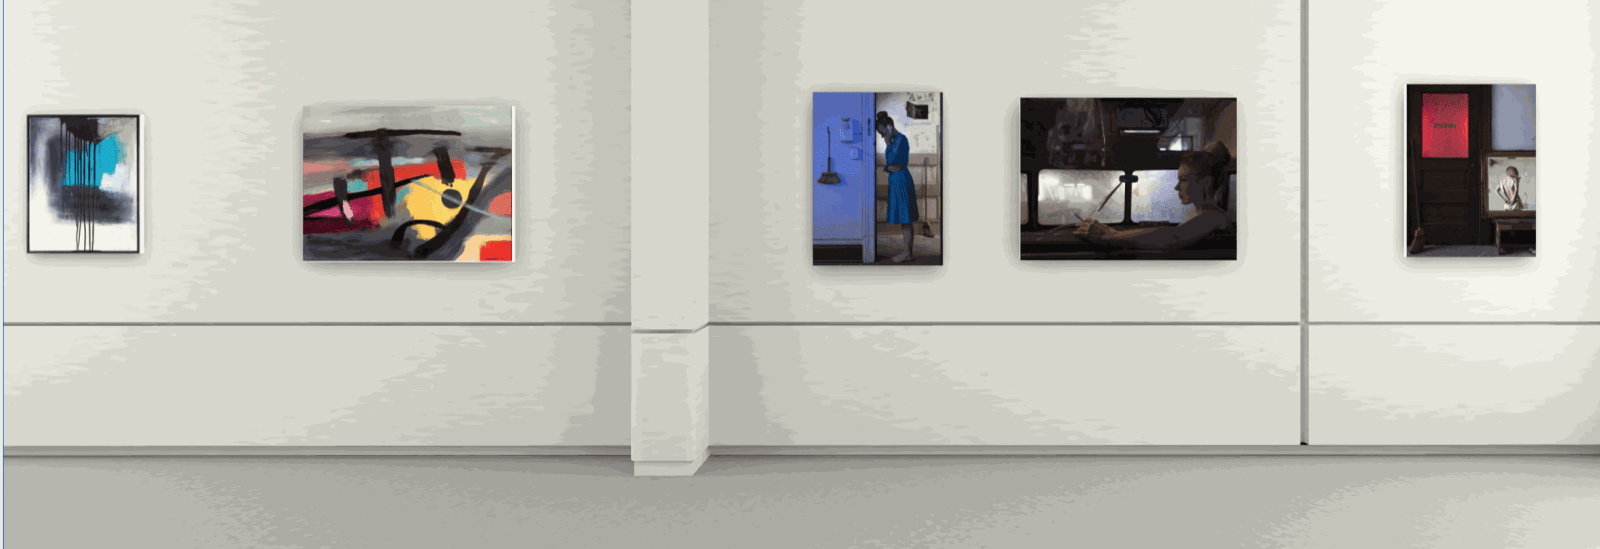 left to right: paintings by Eric Sanders, photographs by Susan Copich